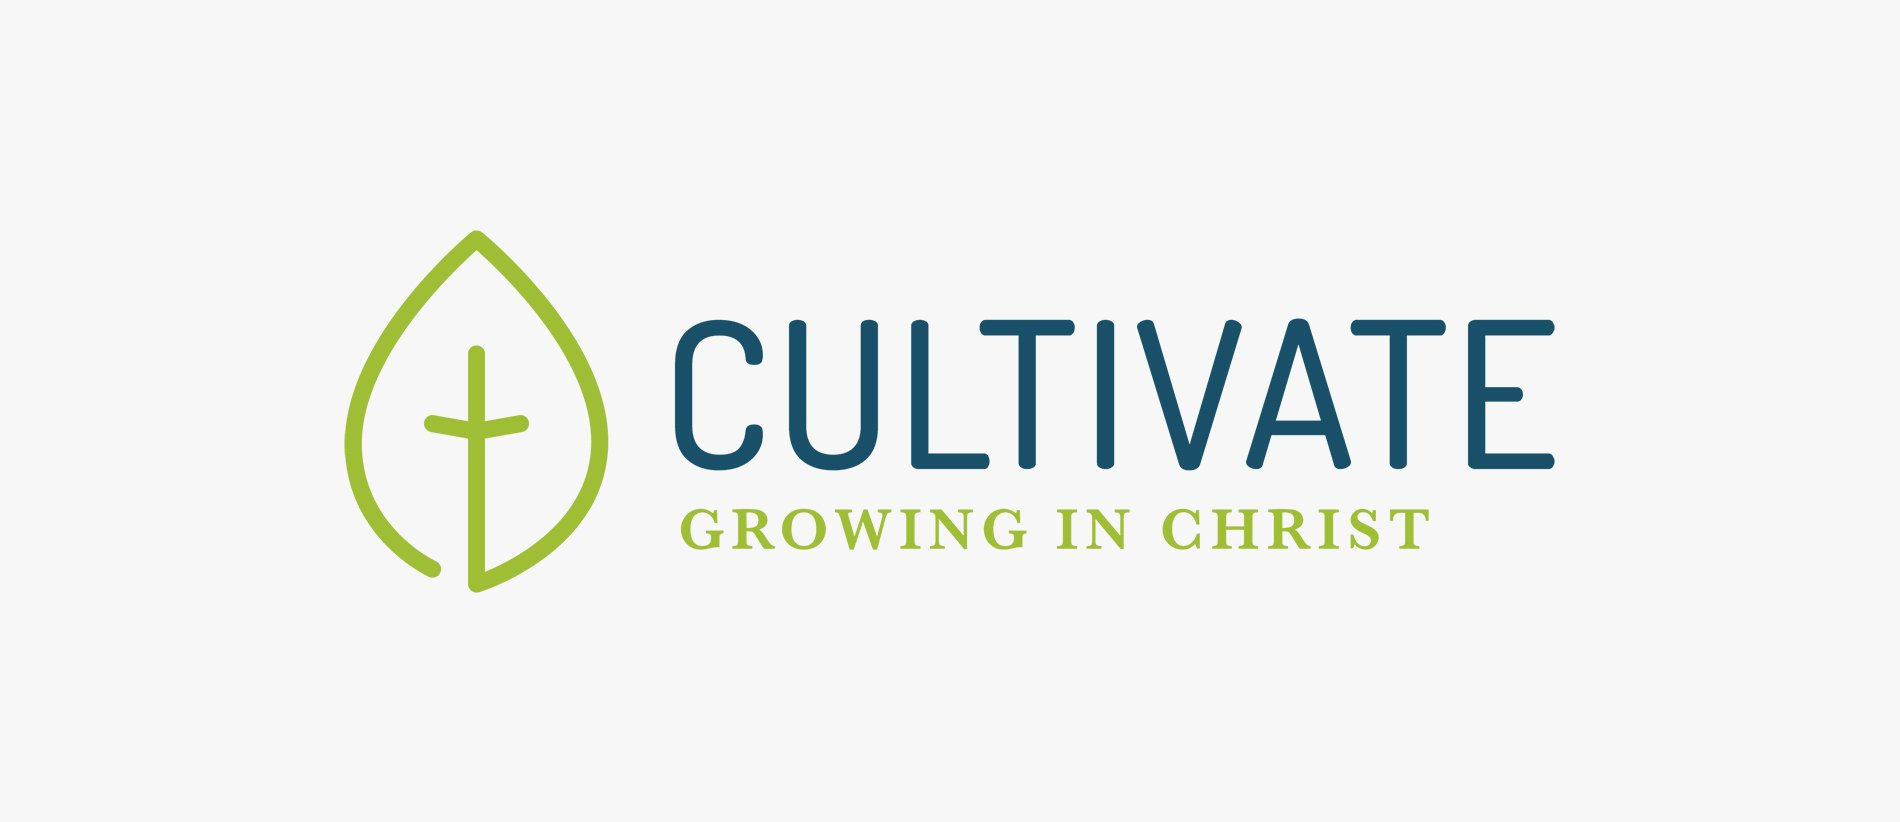 AM-Project-Logos-Cultivate2